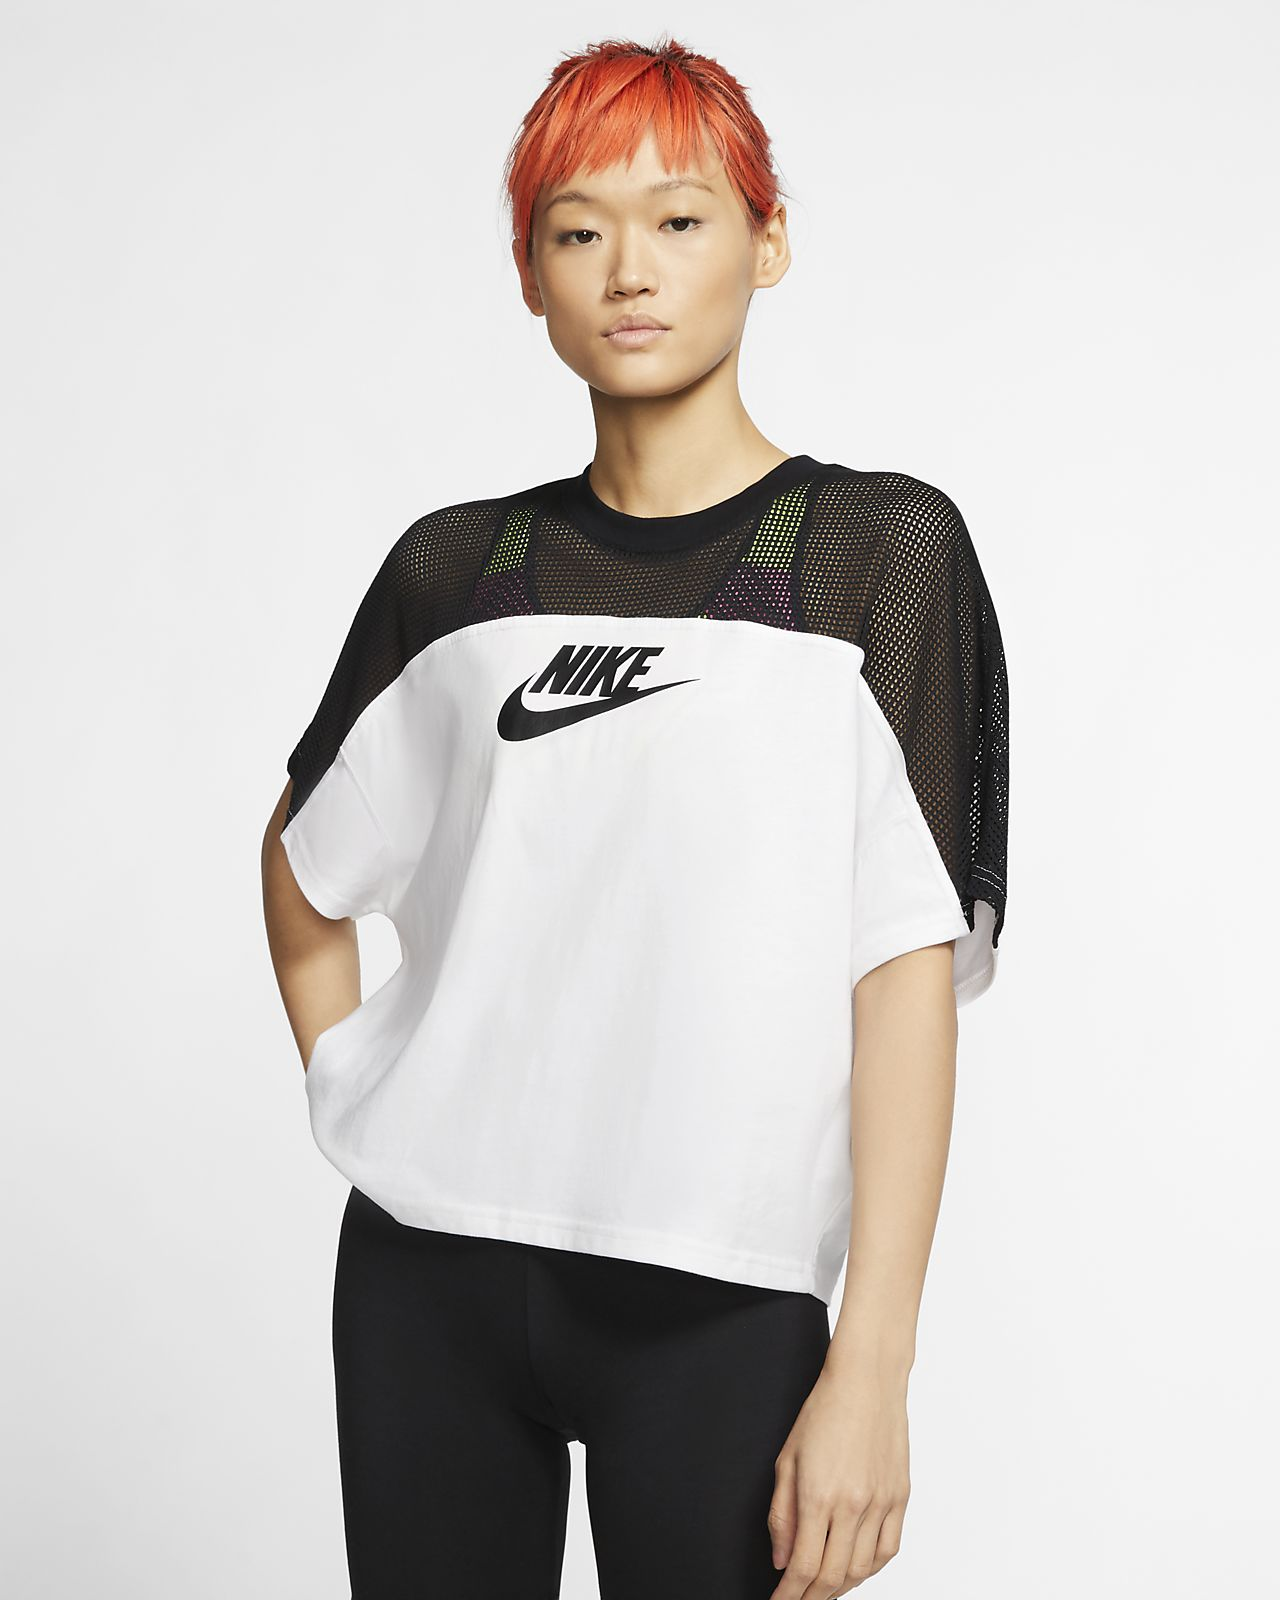 Nike Sportswear Women's Short-Sleeve Mesh Top